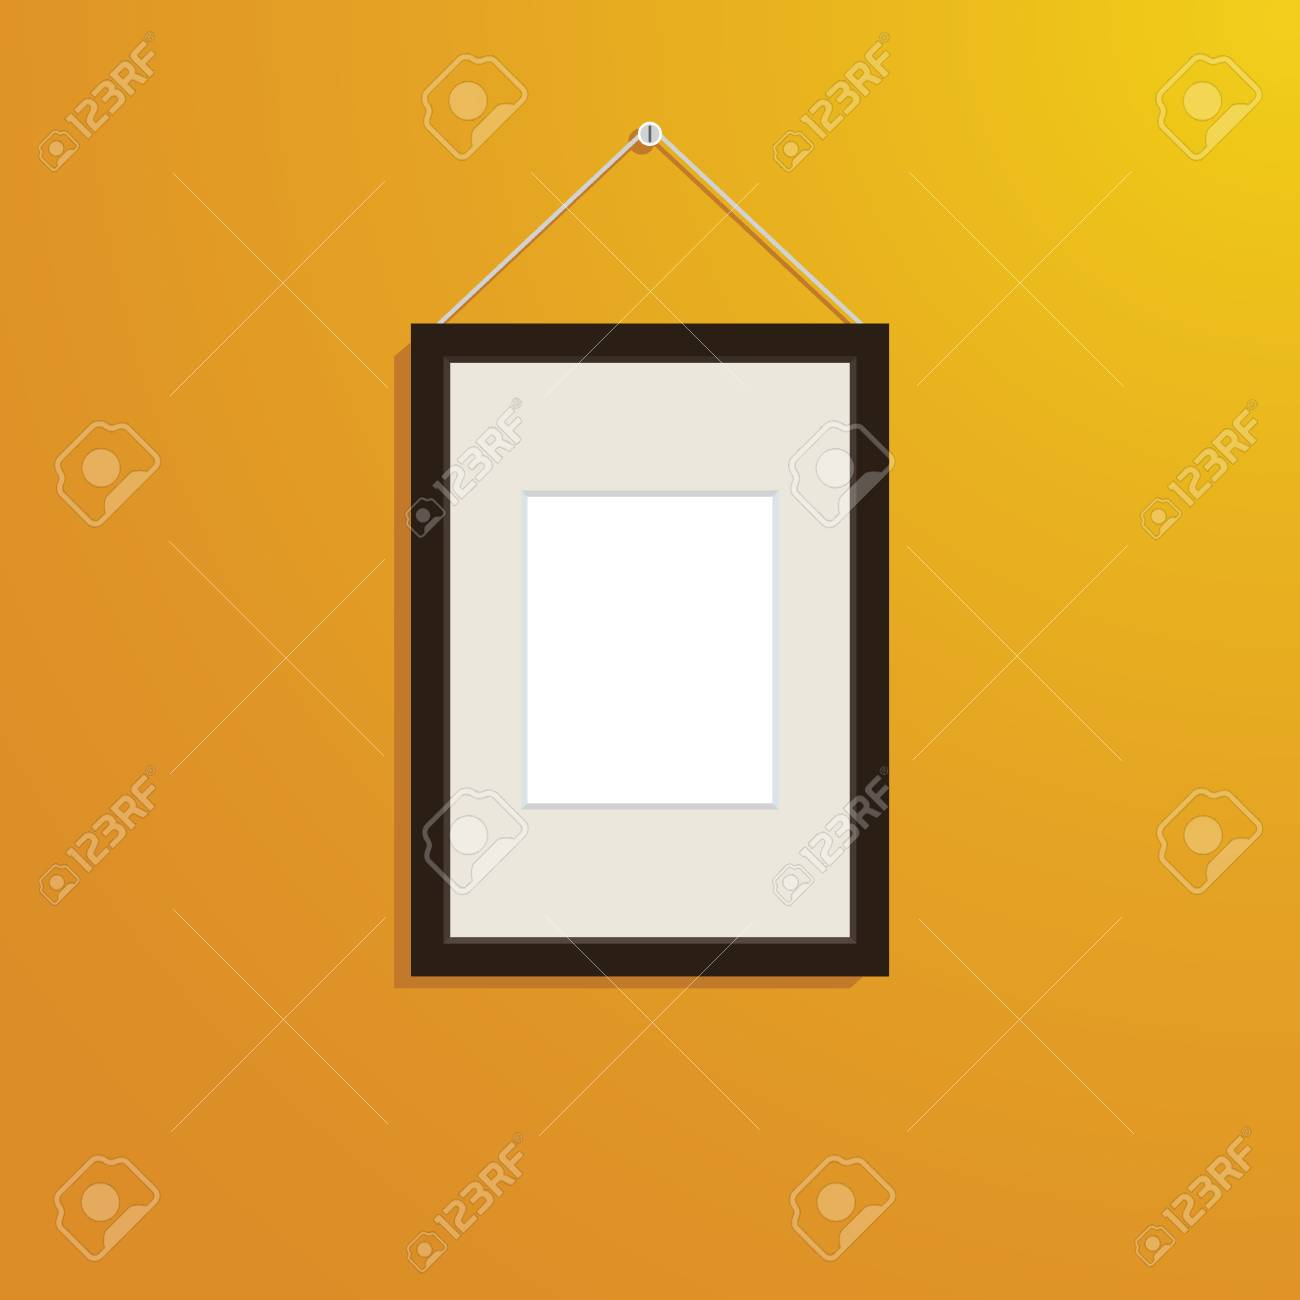 Frame Picture On Wall Decorate Royalty Free Cliparts, Vectors, And ...